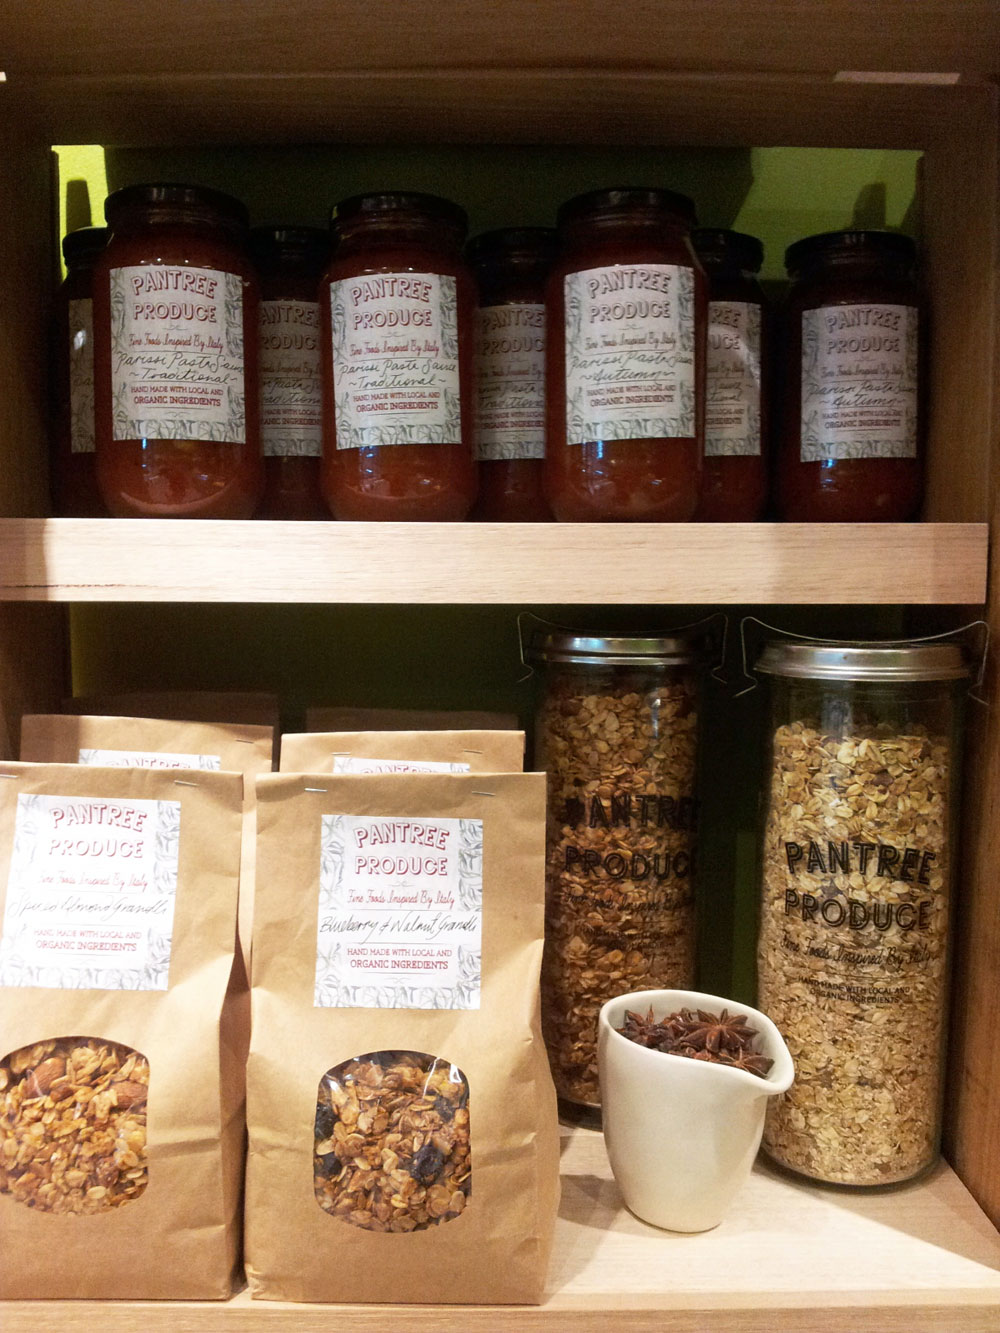 PanTree Produce is now stocked at Pulp Friction, in the Trafalga Arcade in Hobart's CBD. Our Complete range of Granolli and Mueslis and Porridge, along with our Parissi Pasta Sauce range is on the shelves! Pulp Friction (aka Juicy Lucy) makes amazing juice, so head on down to Collins Street and enjoy this delicious new shop!    http://www.facebook.com/PulpFrictionJuiceBar